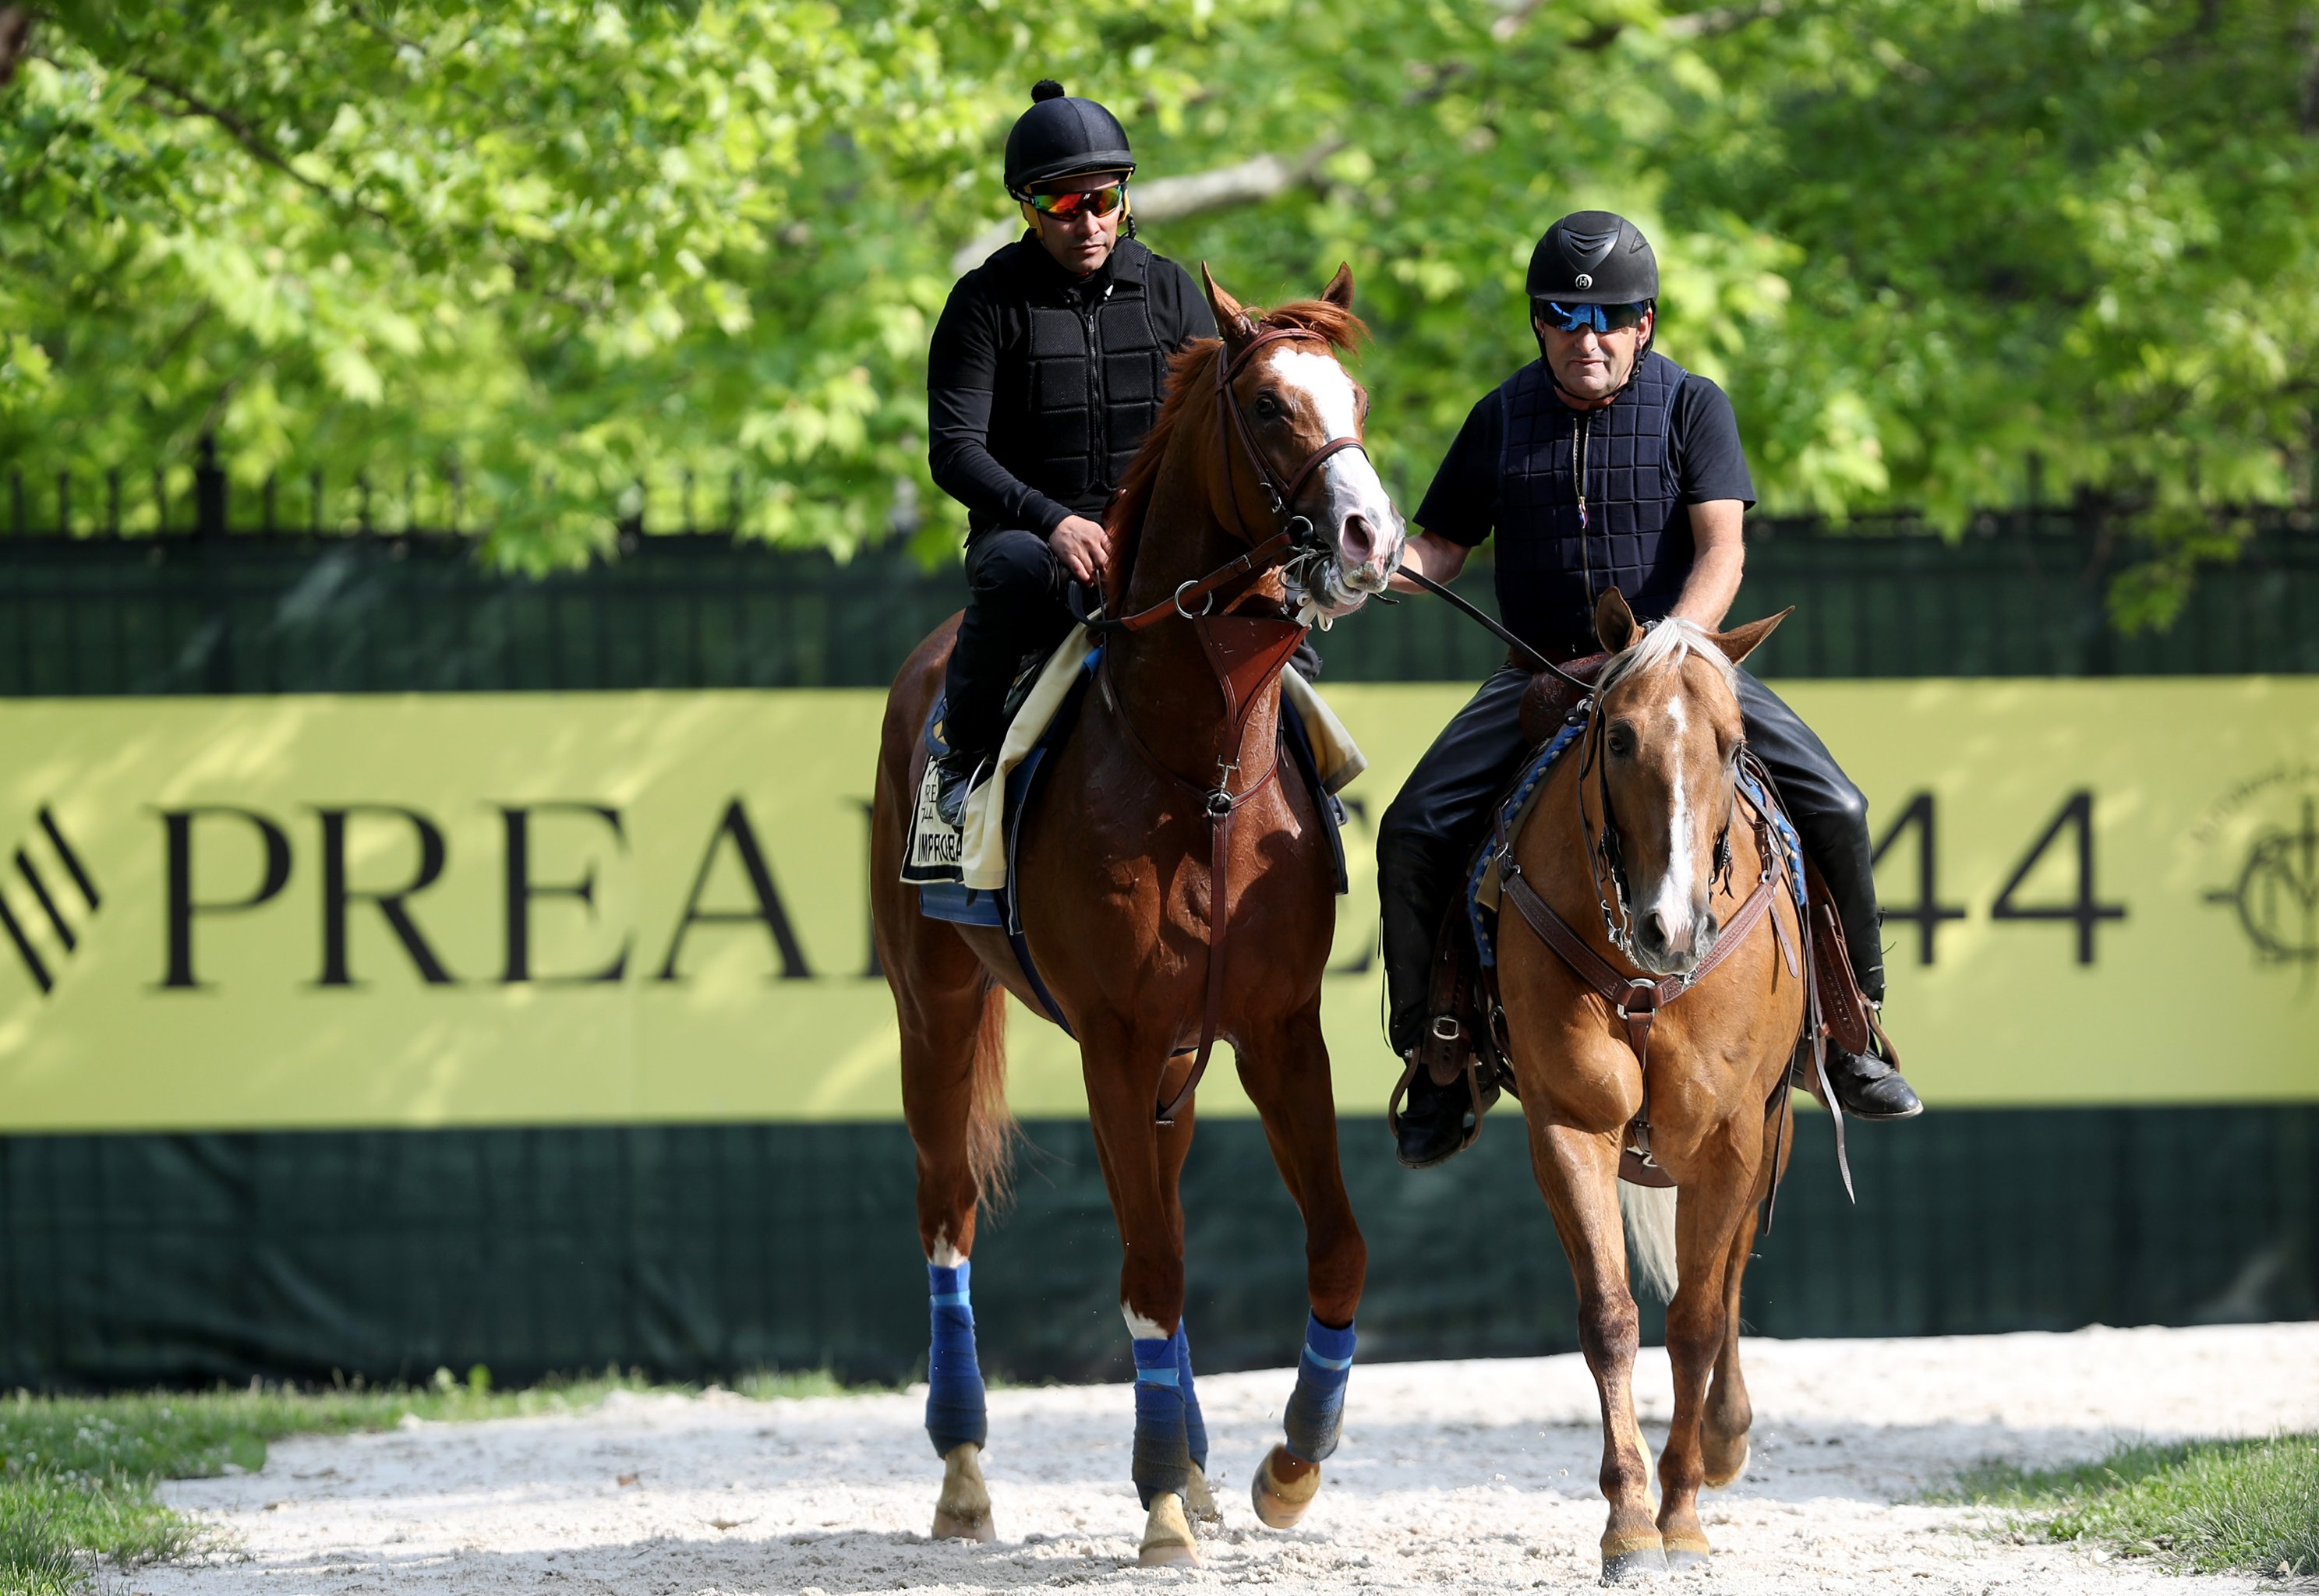 Preakness 2019: Entries, Contenders, Odds and Lineup